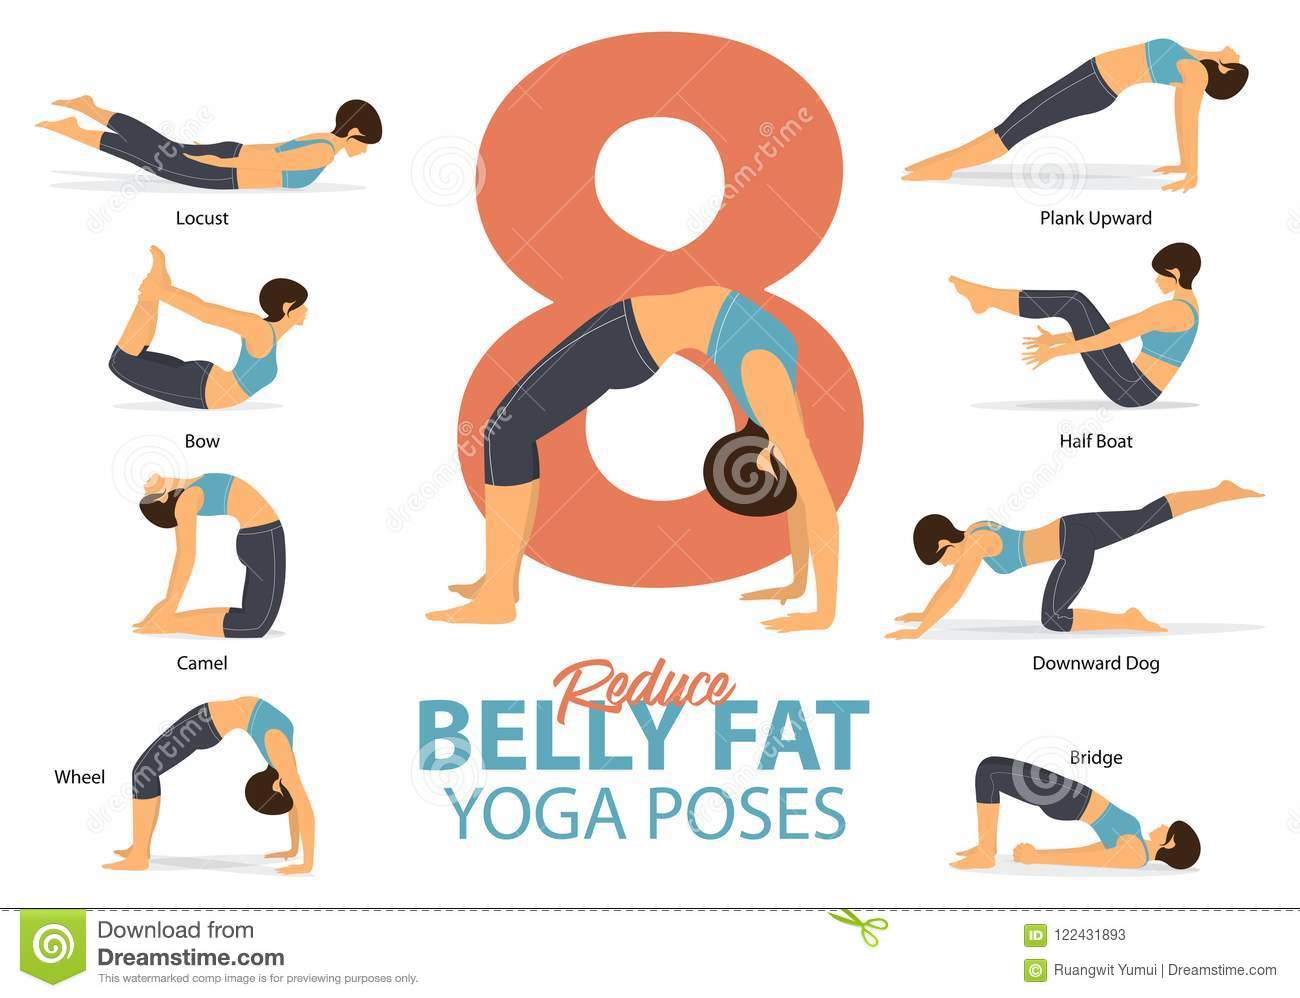 Download A Set Of Yoga Postures Female Figures For Infographic 8 Poses Reduce Belly